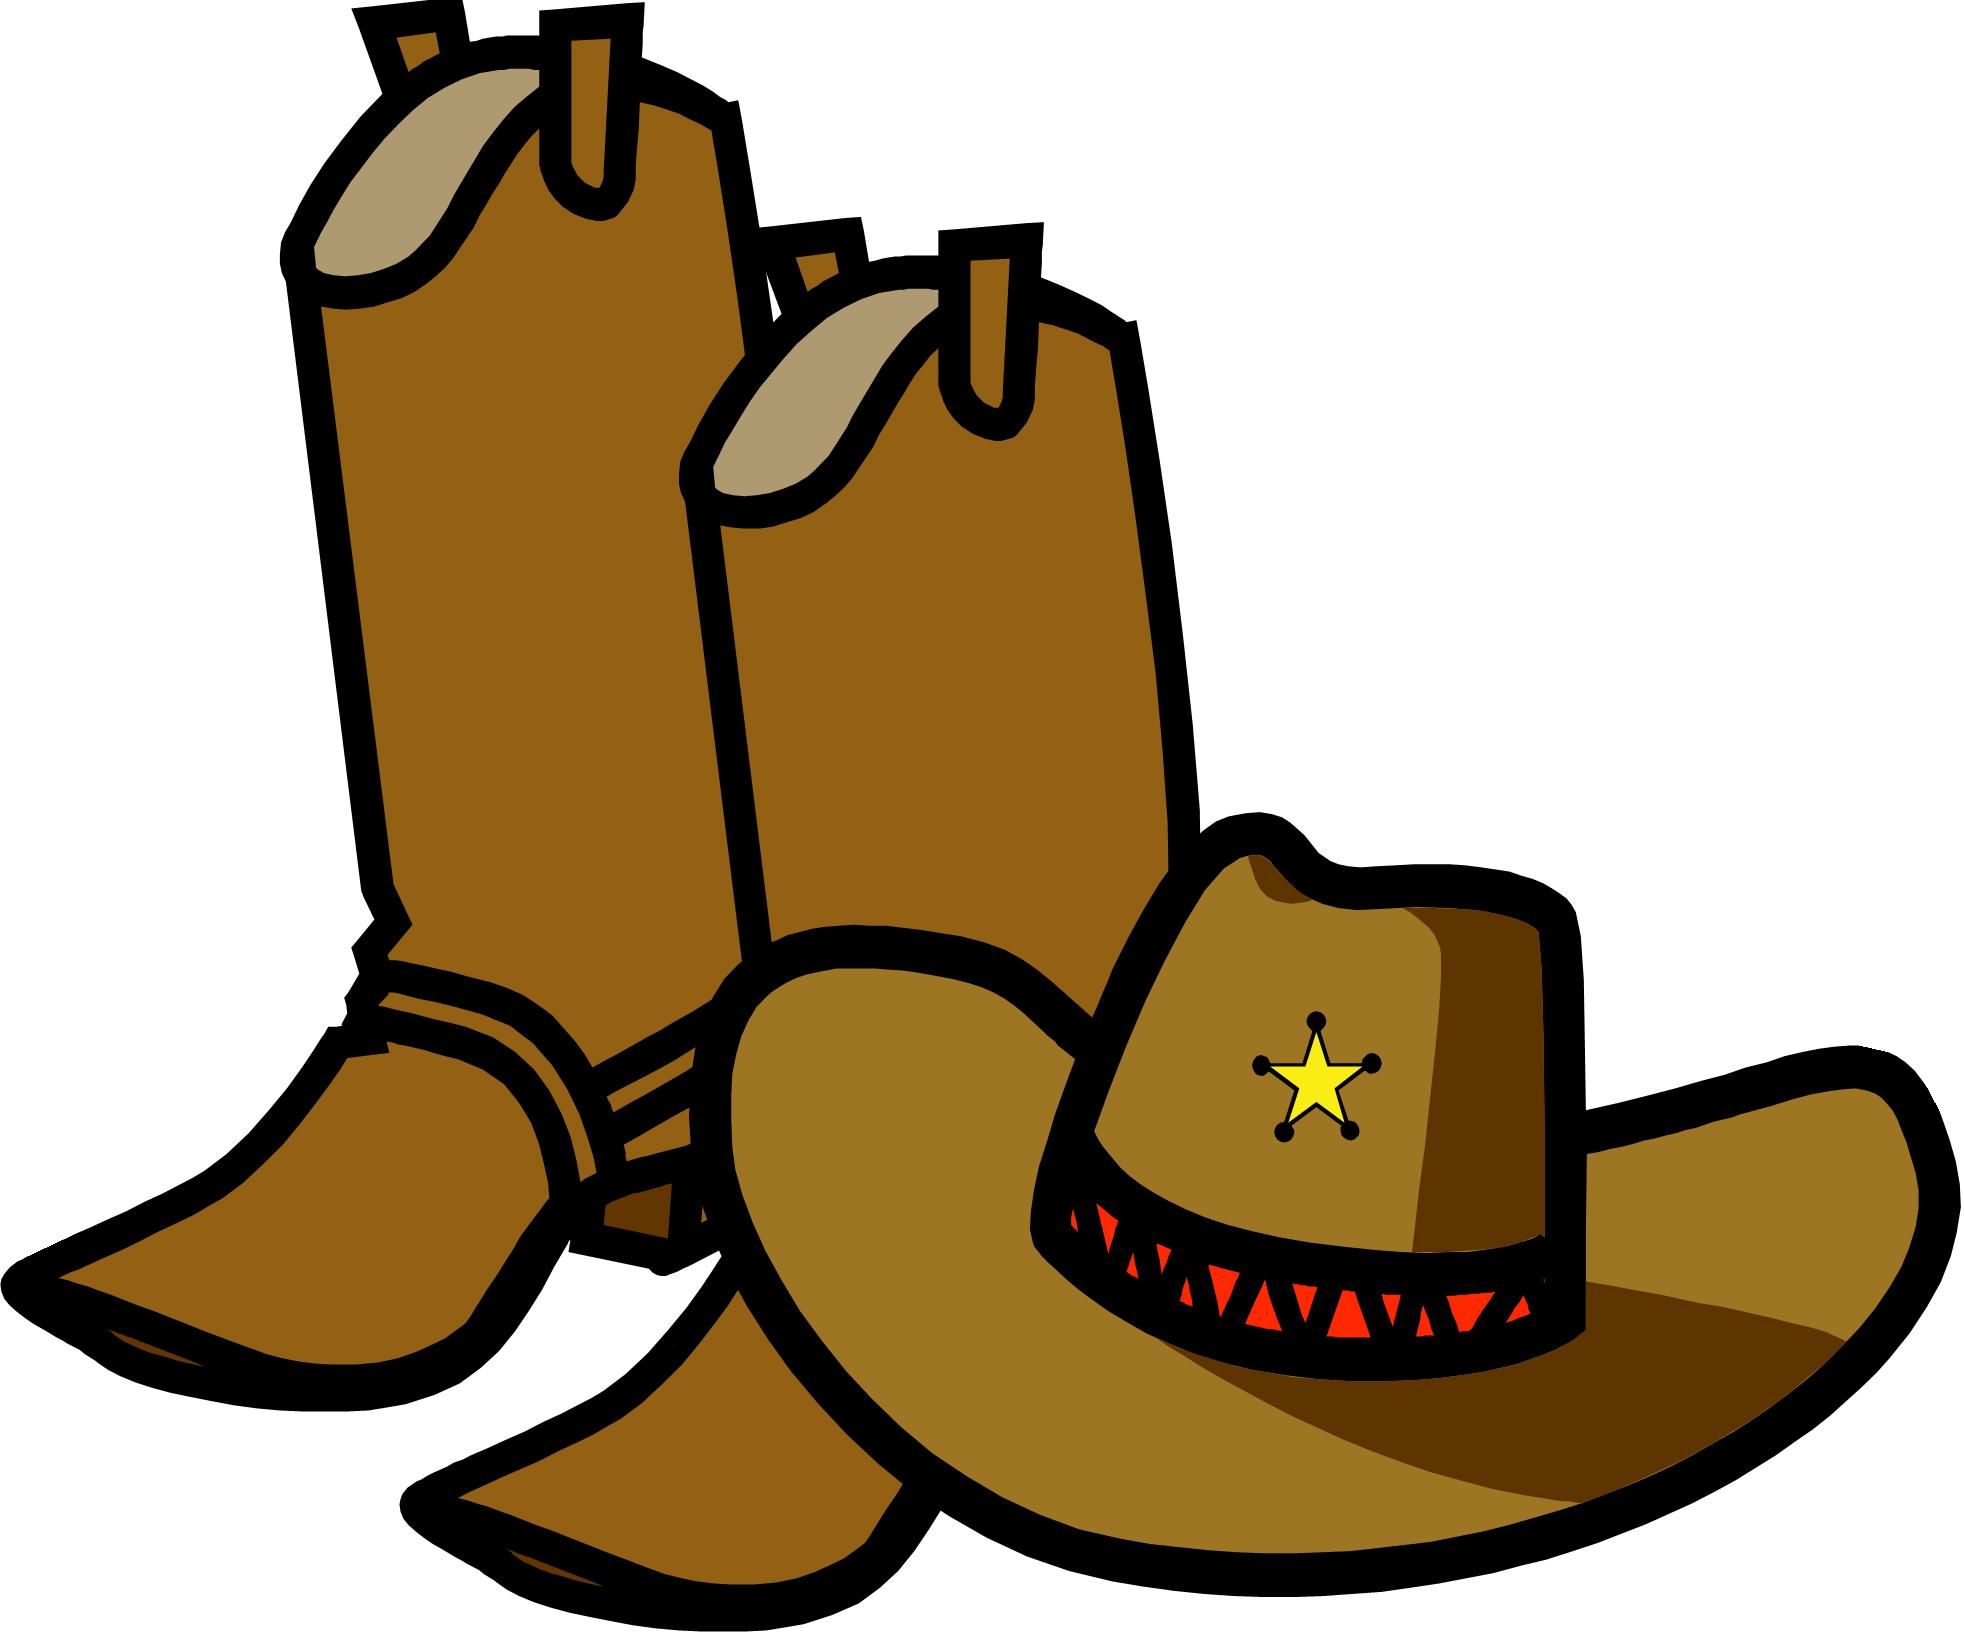 Baby cowboy boots clipart free images 2.